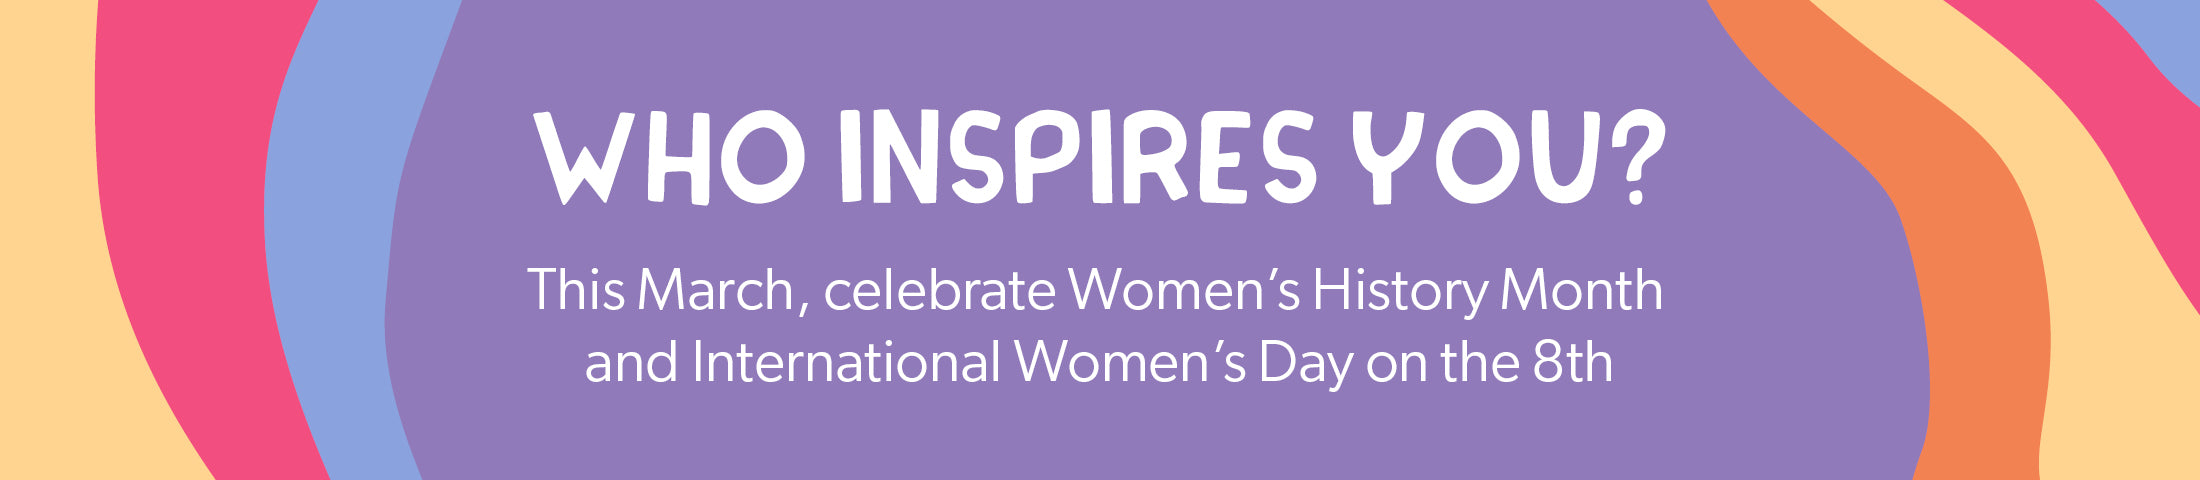 Who inspires you? This March, celebrate Women's History Month and International Women's Day on the 8th